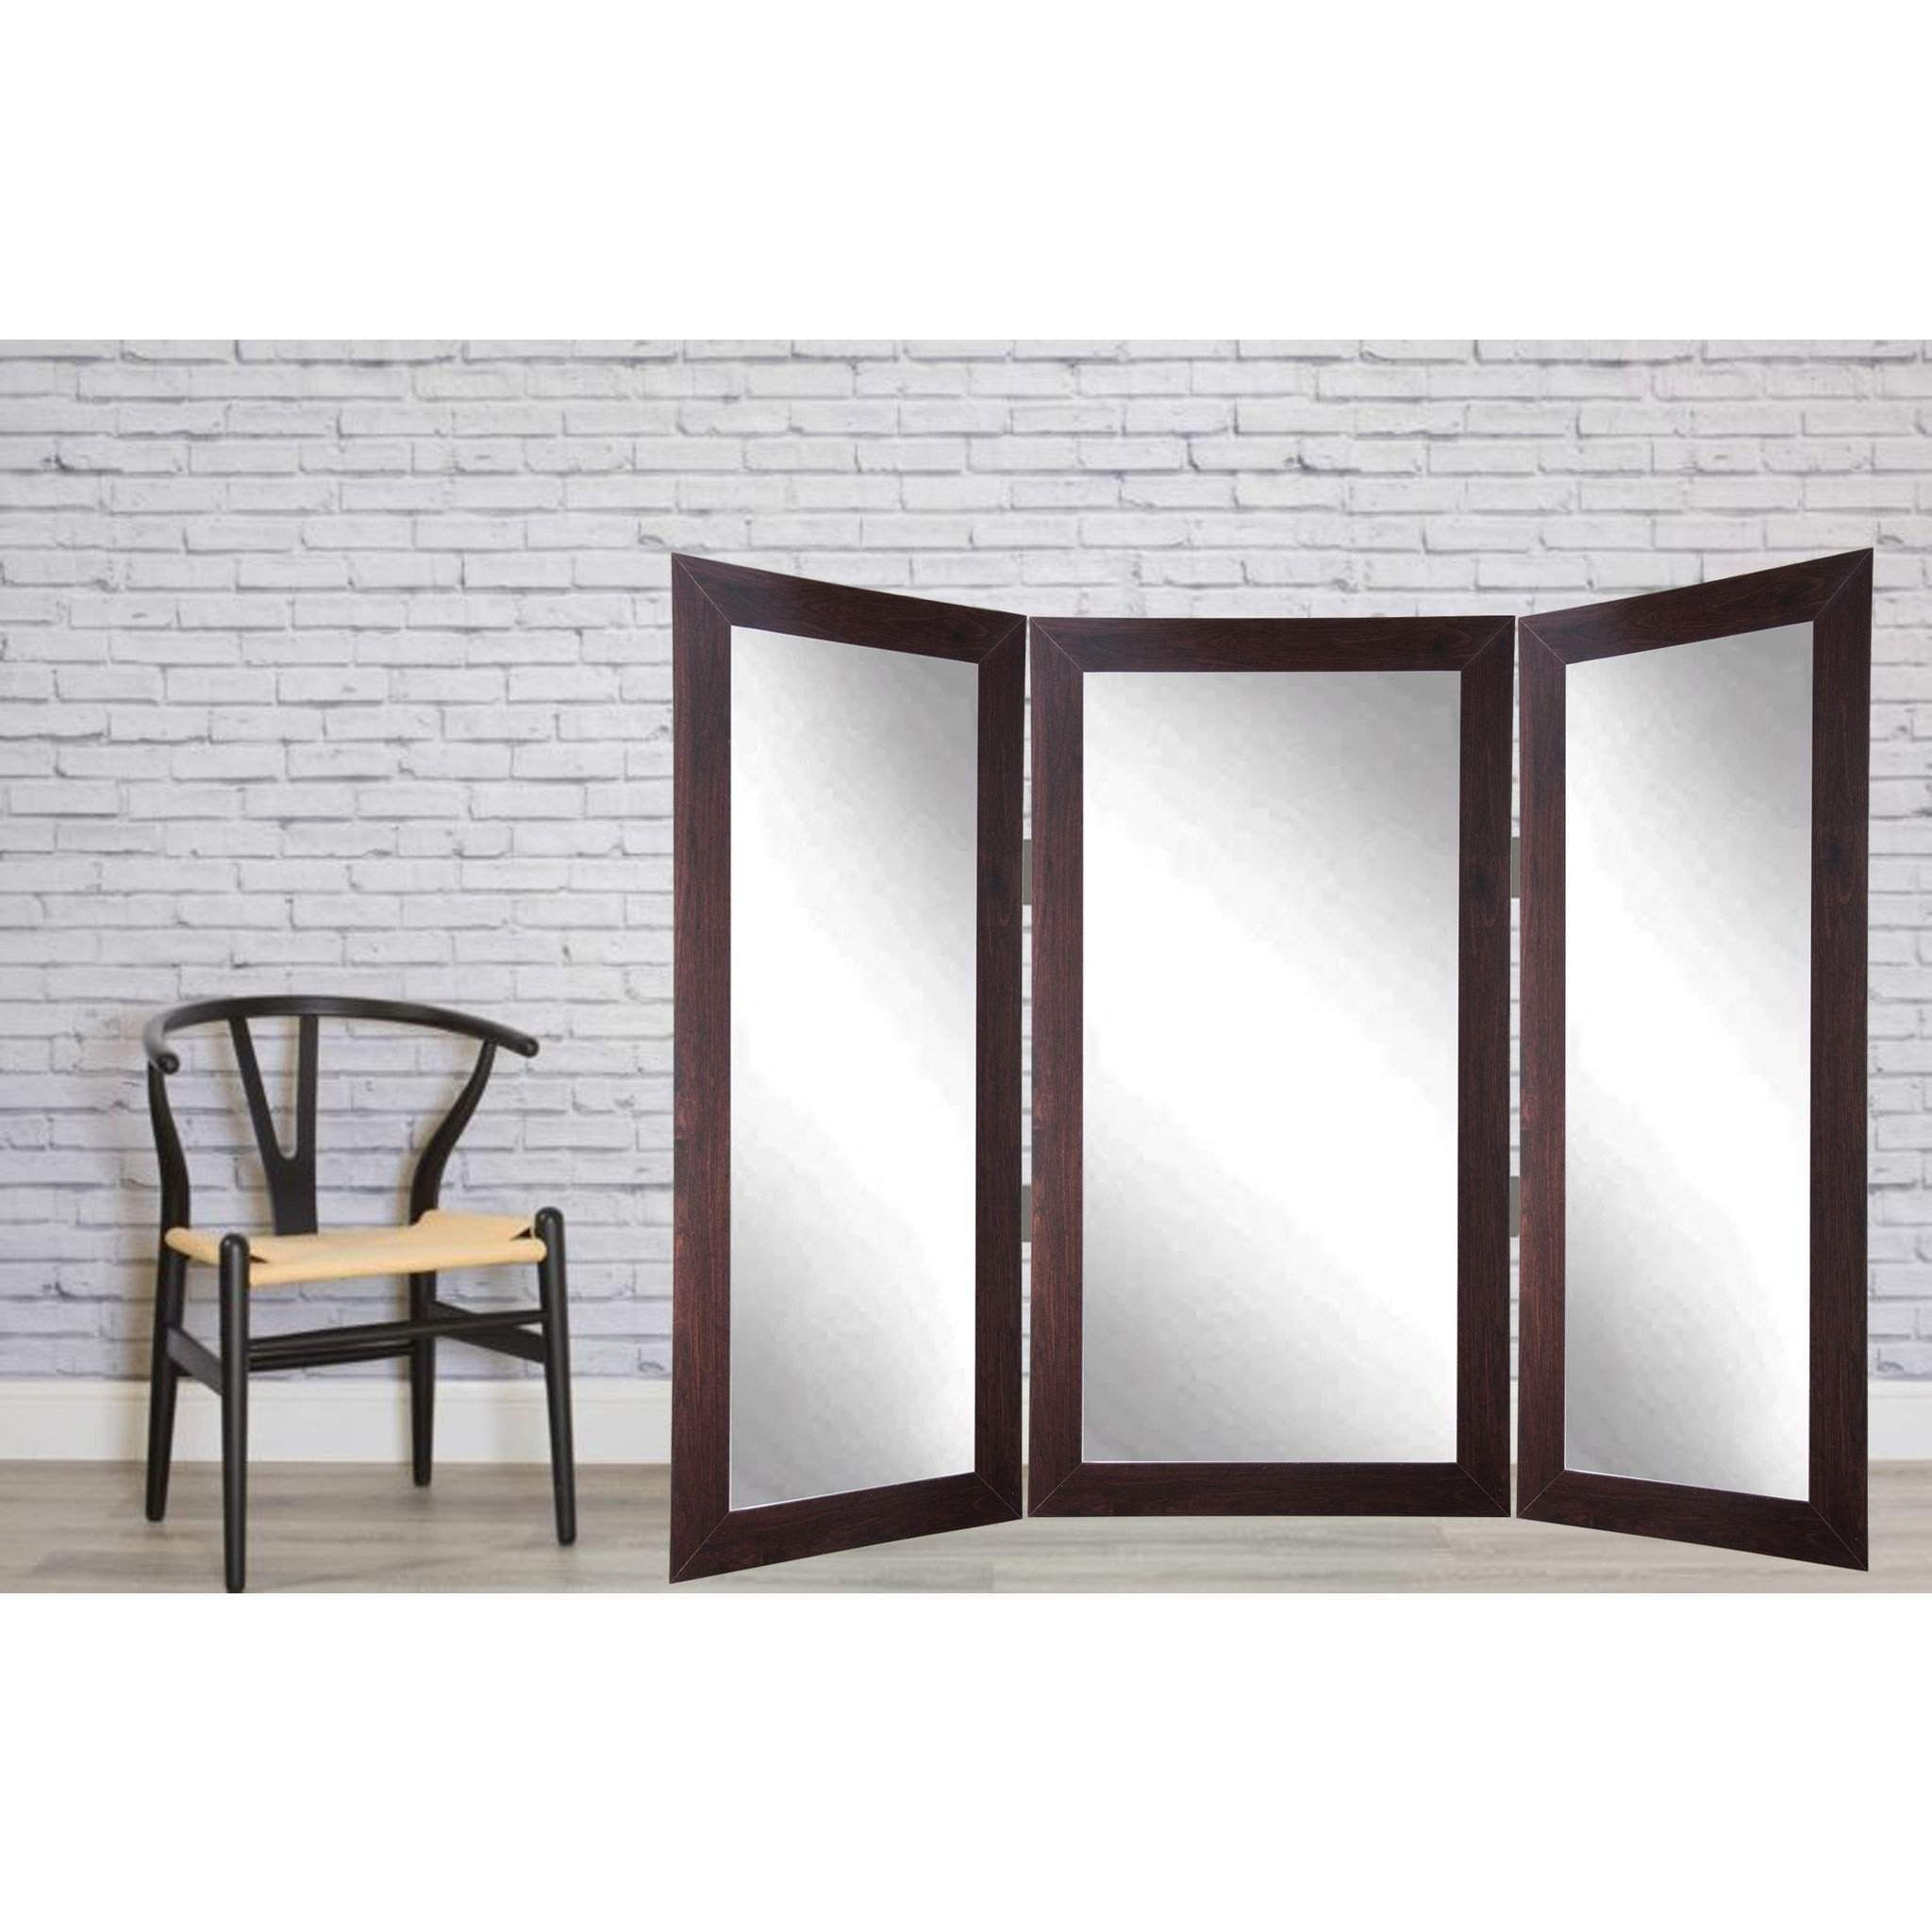 Brandt Works Dark Walnut Tri Fold Dressing Mirror Hand Crafted To Enhance The Functionality And Style In Your Home This Free Dressing Mirror Home Floor Mirror